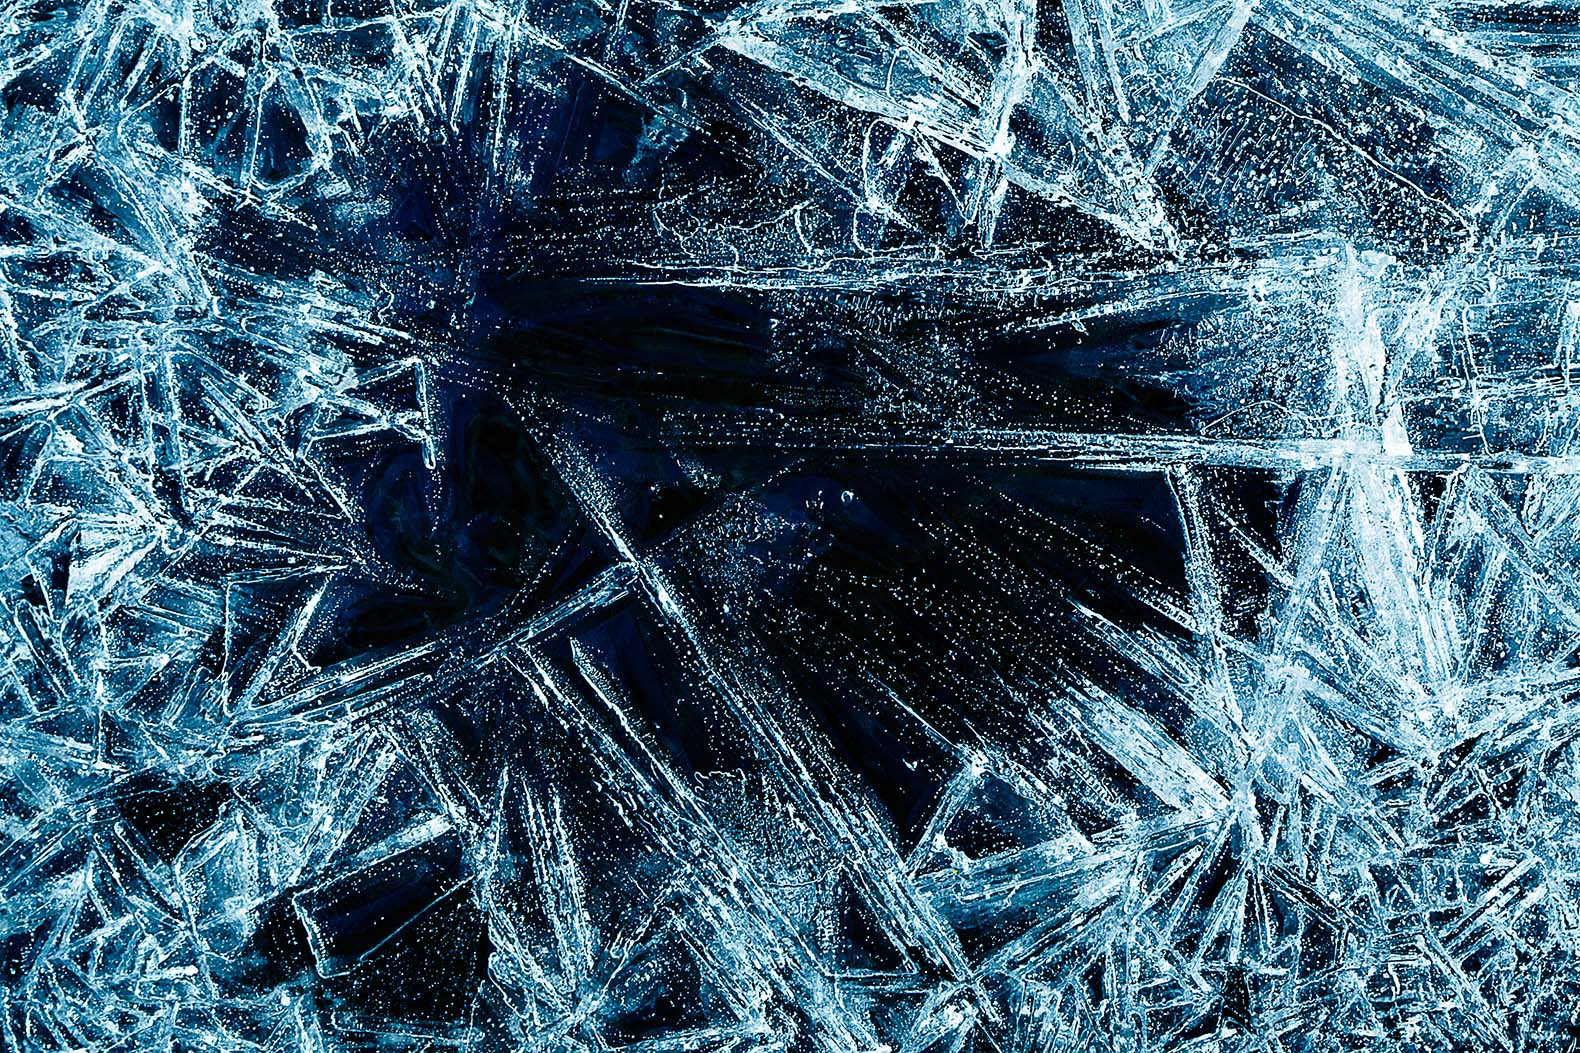 Newly Discovered Form Of Ice Offers Hints About Other